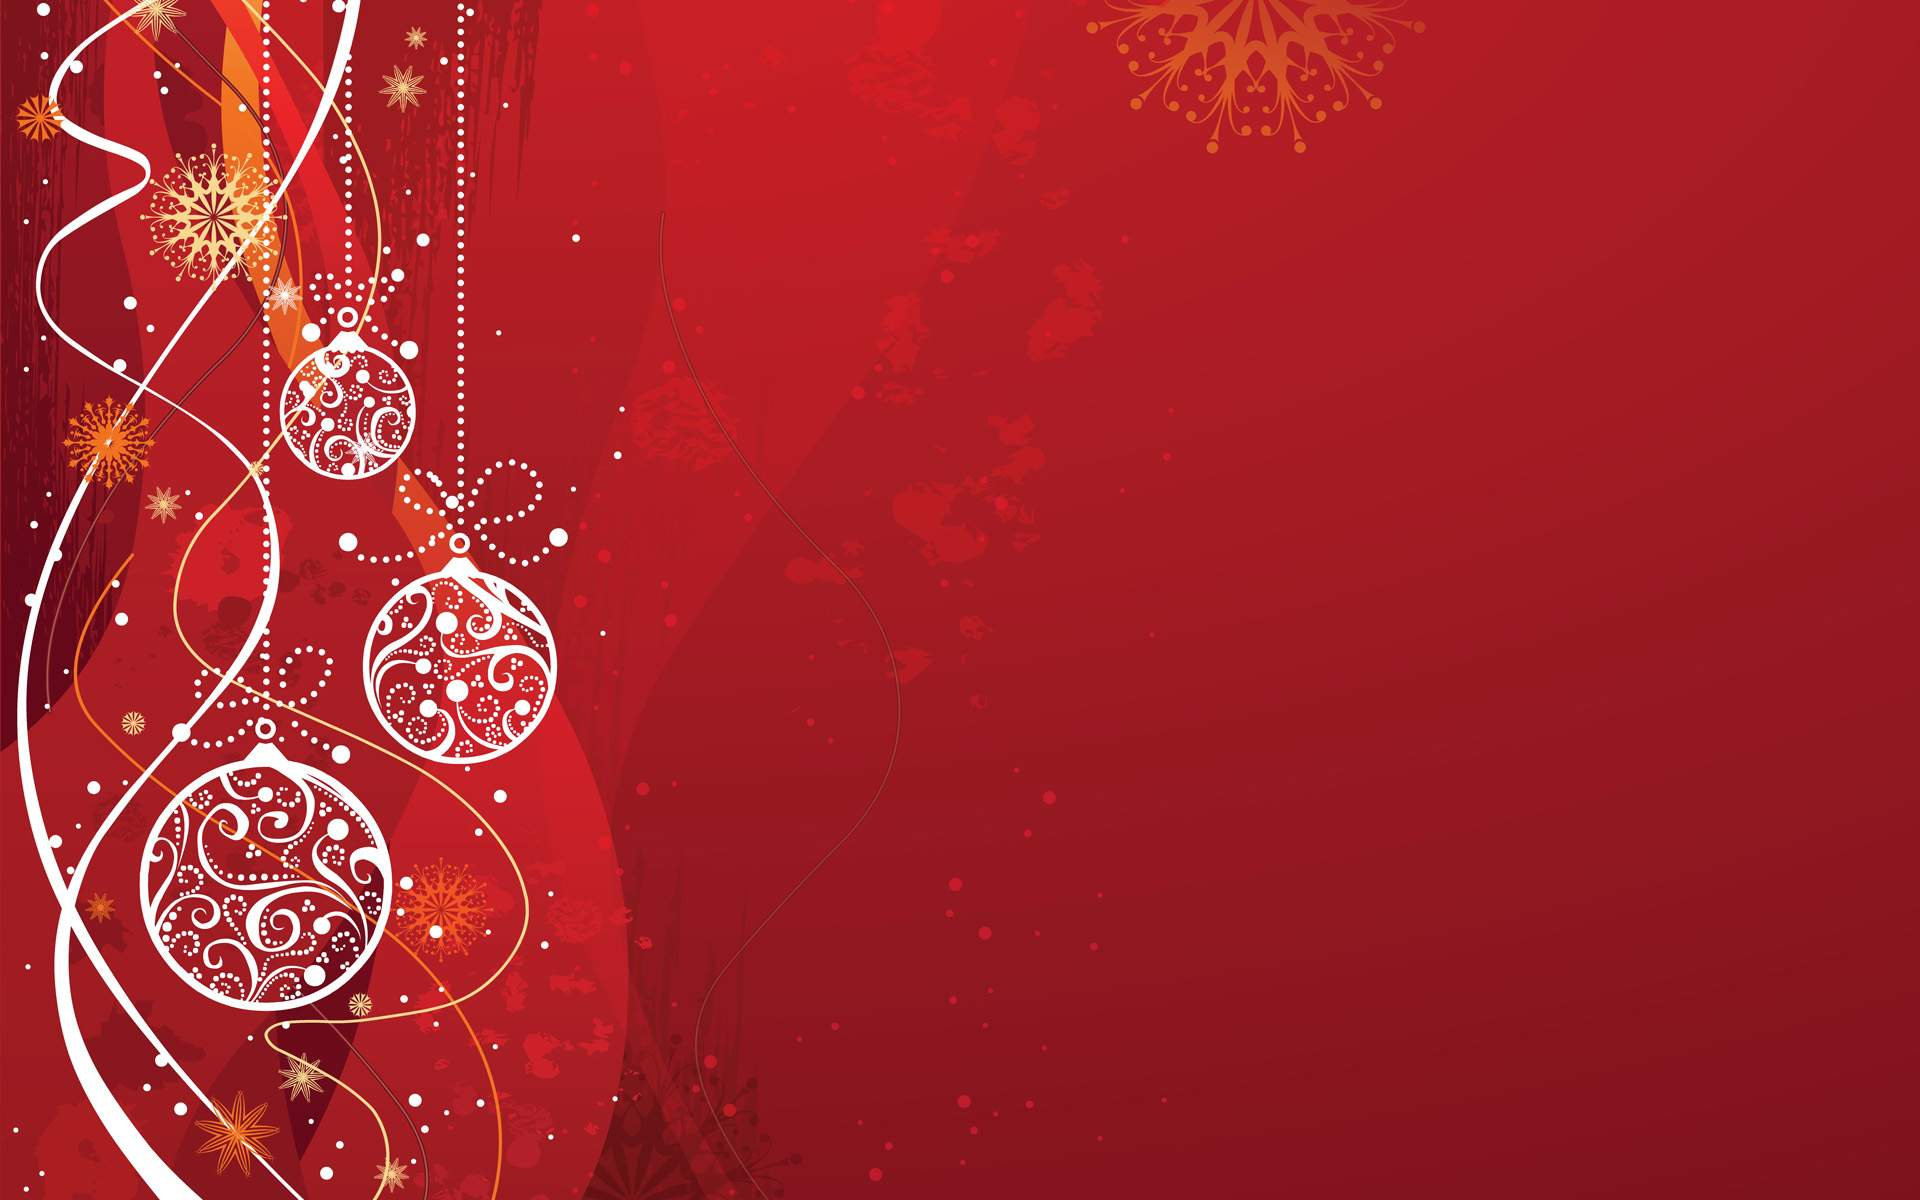 Christian Christmas Backgrounds 1920x1200